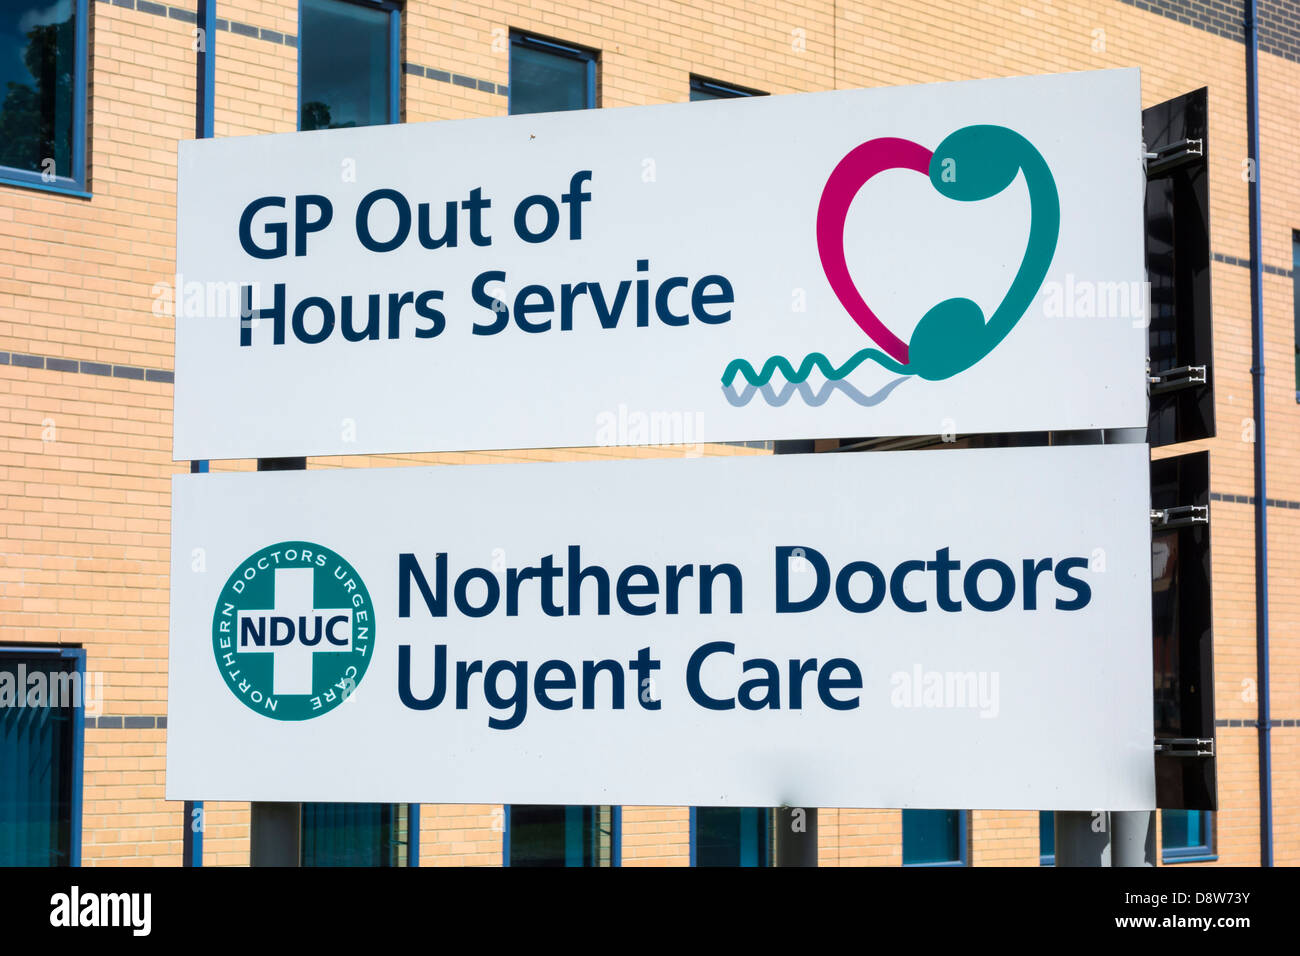 Norther Doctors Urgent Care GP out of hours service, Stockton on Tees, Cleveland, England, UK - Stock Image